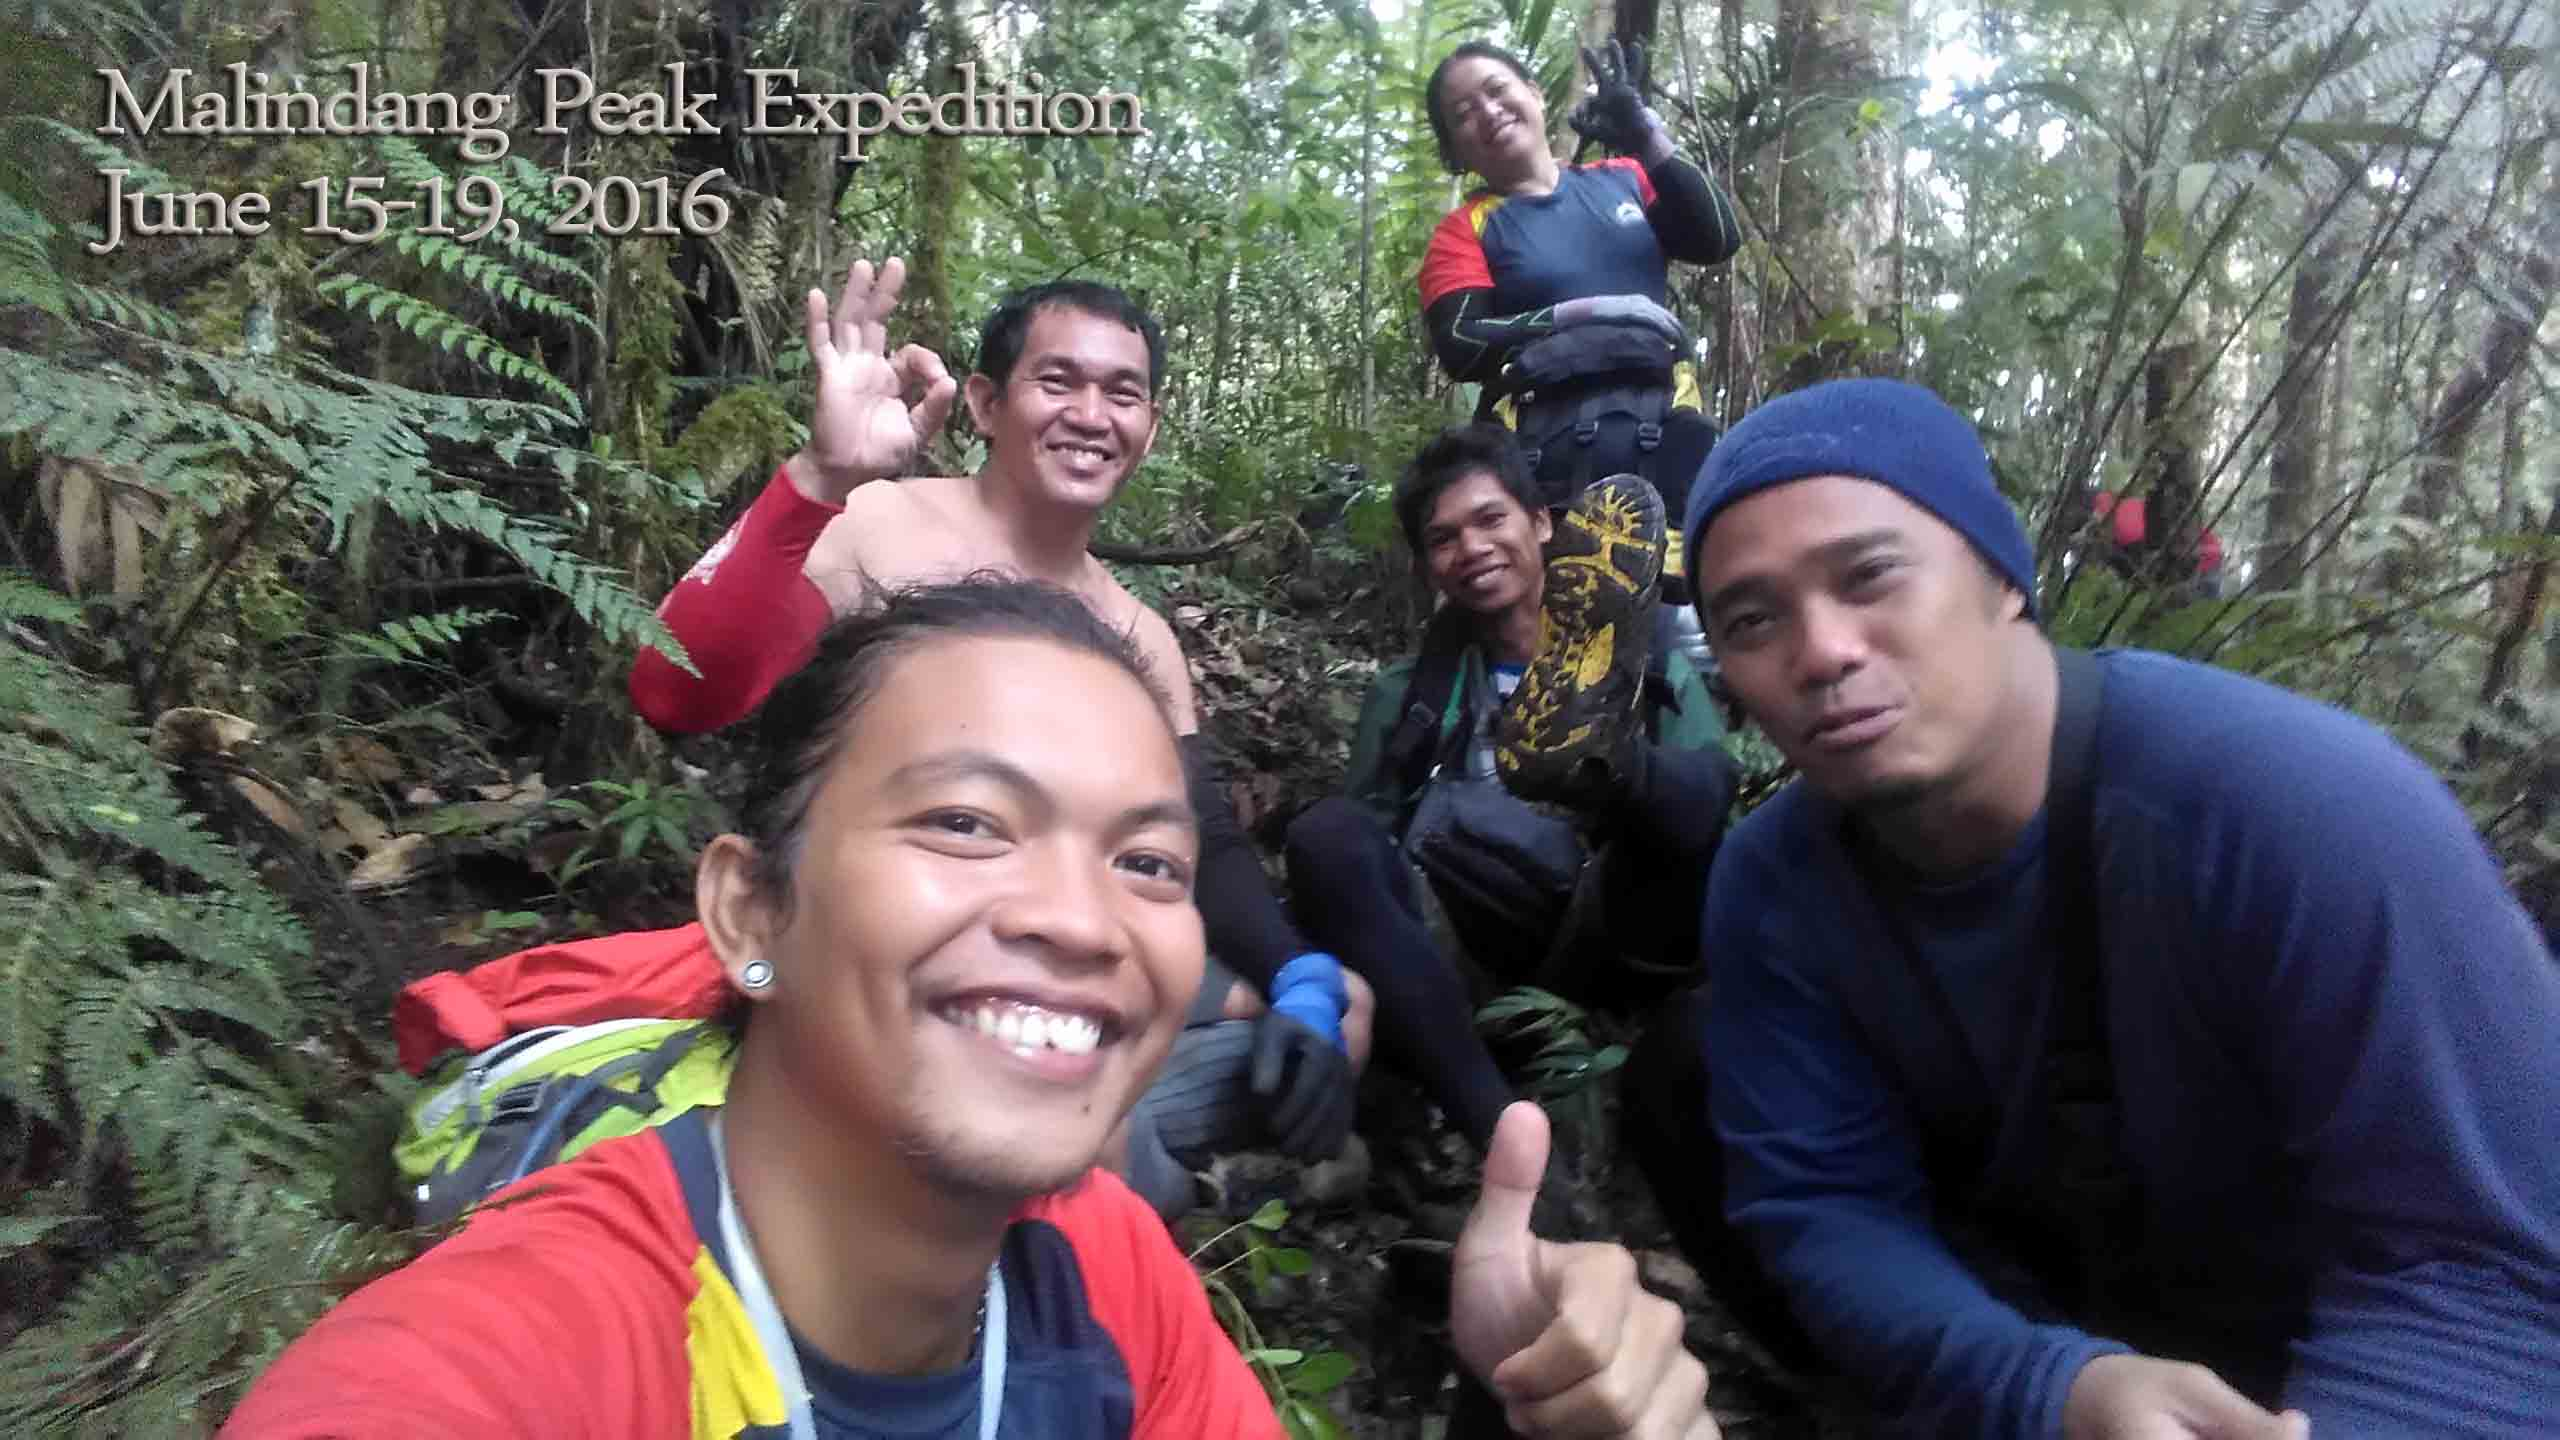 thephotos/2016/malindang peak expedition/DSC_1404.jpg